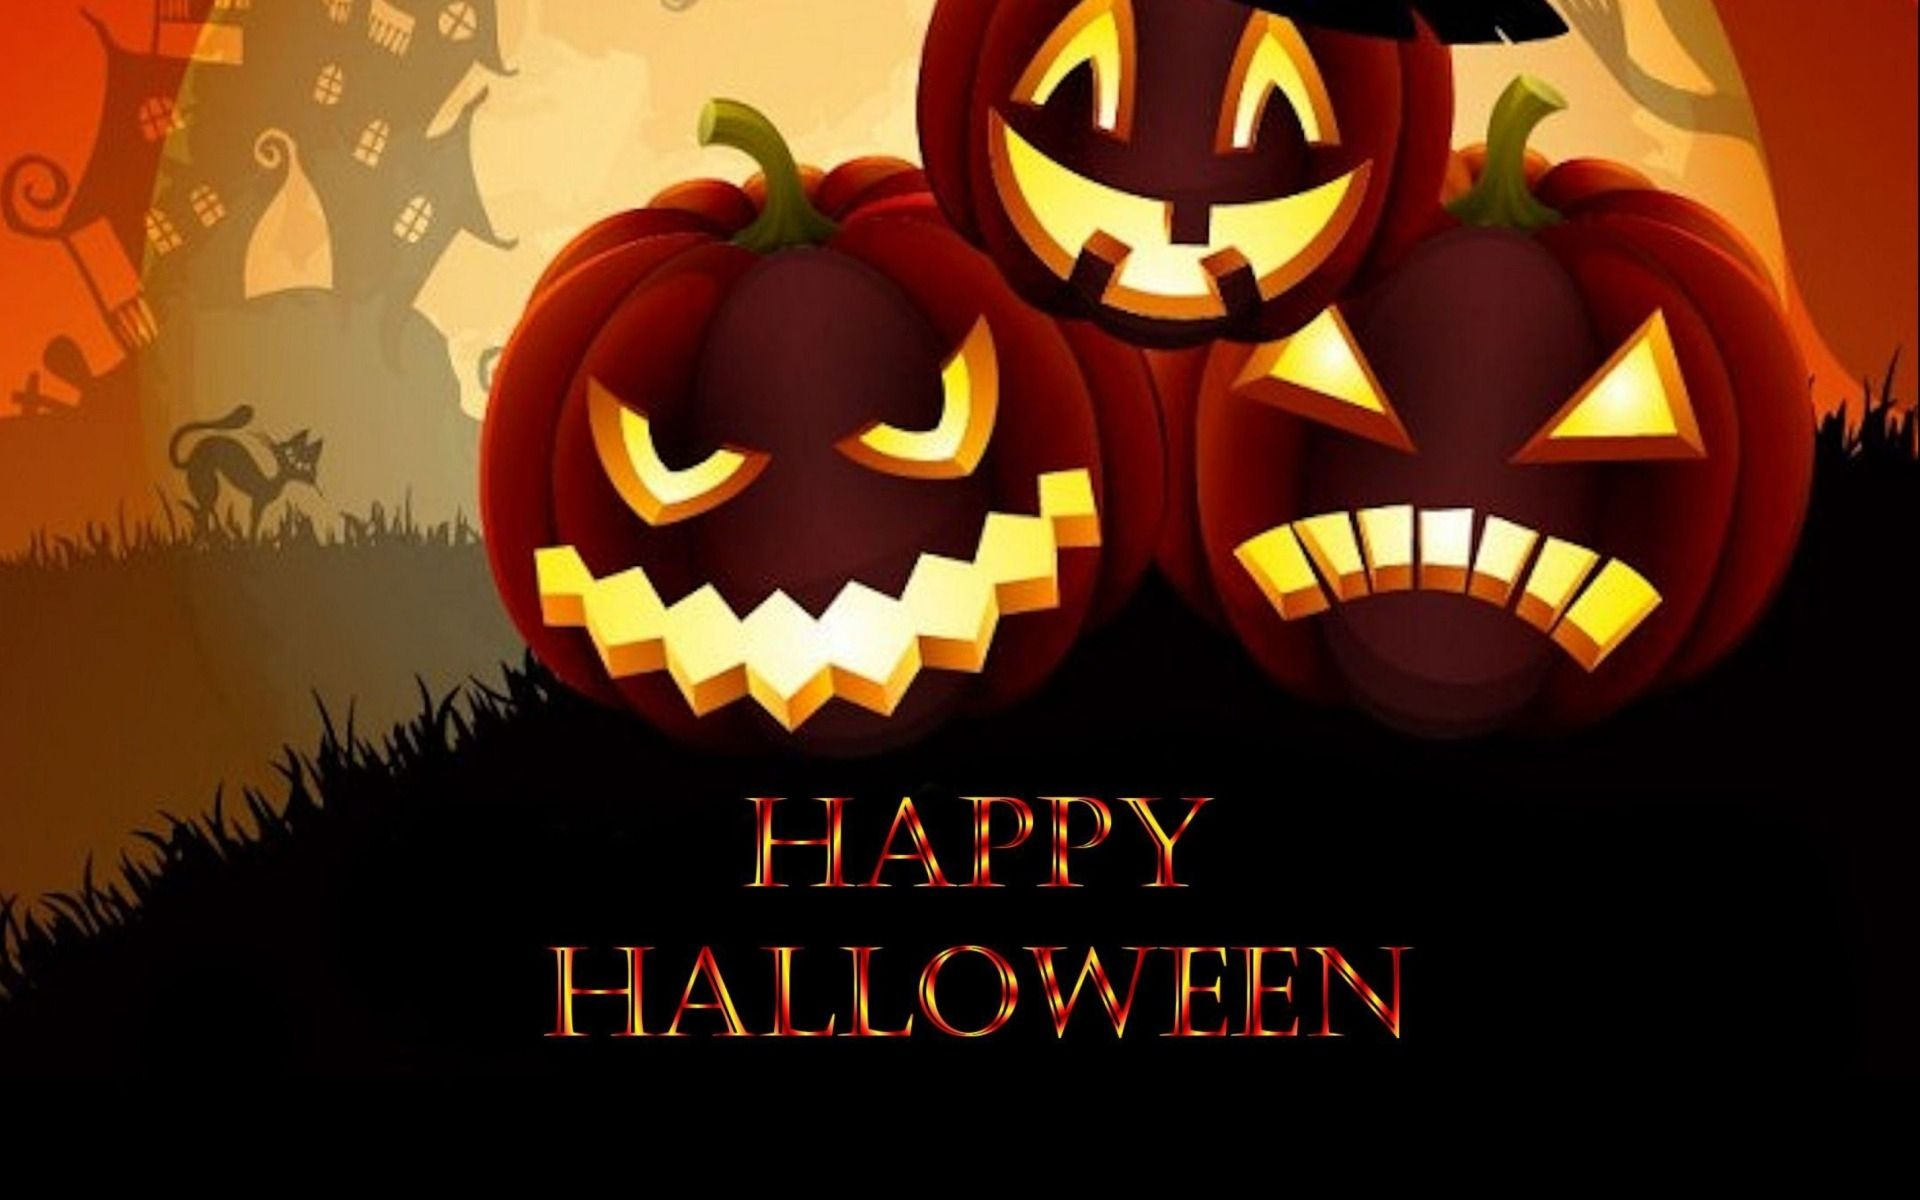 Funny Scary Halloween Pictures